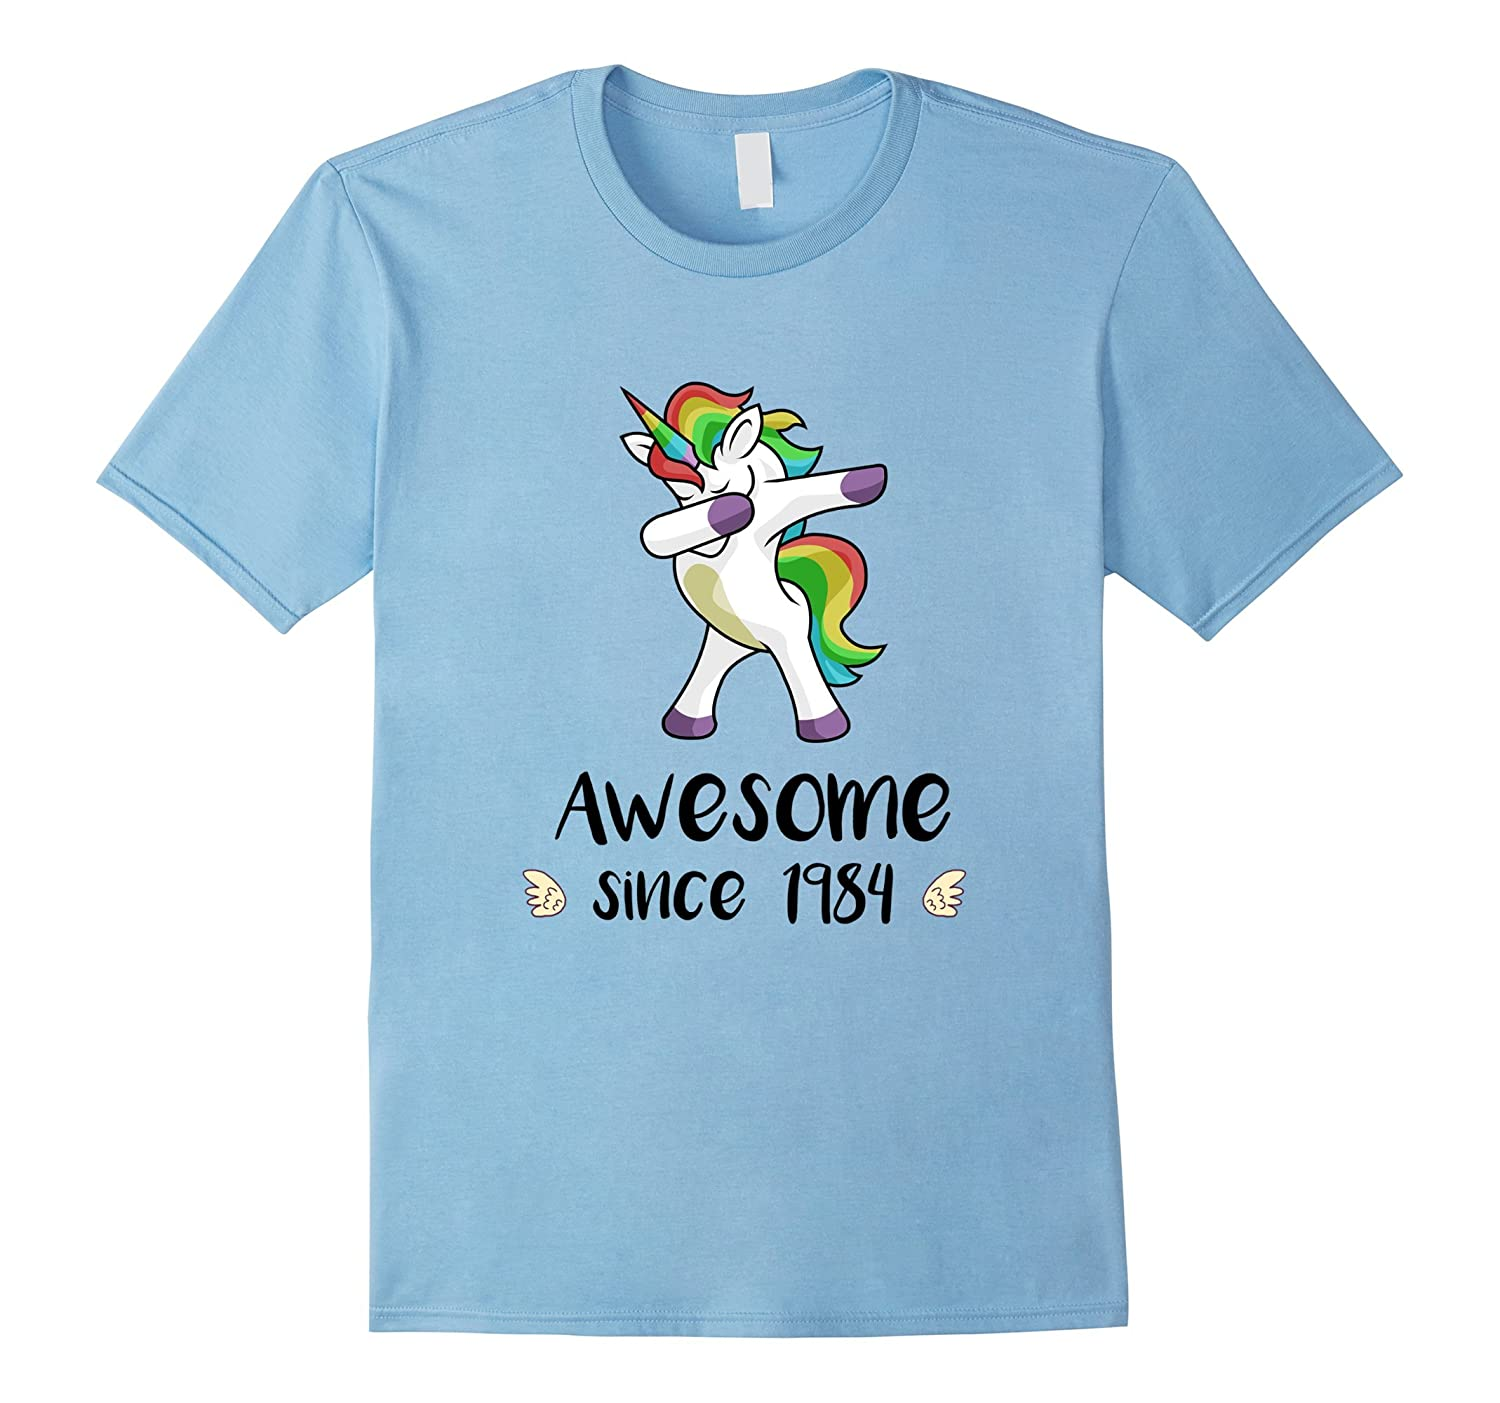 Awesome Since 1984 T-Shirt Dab Unicorn 33rd Birthday Gift-TJ